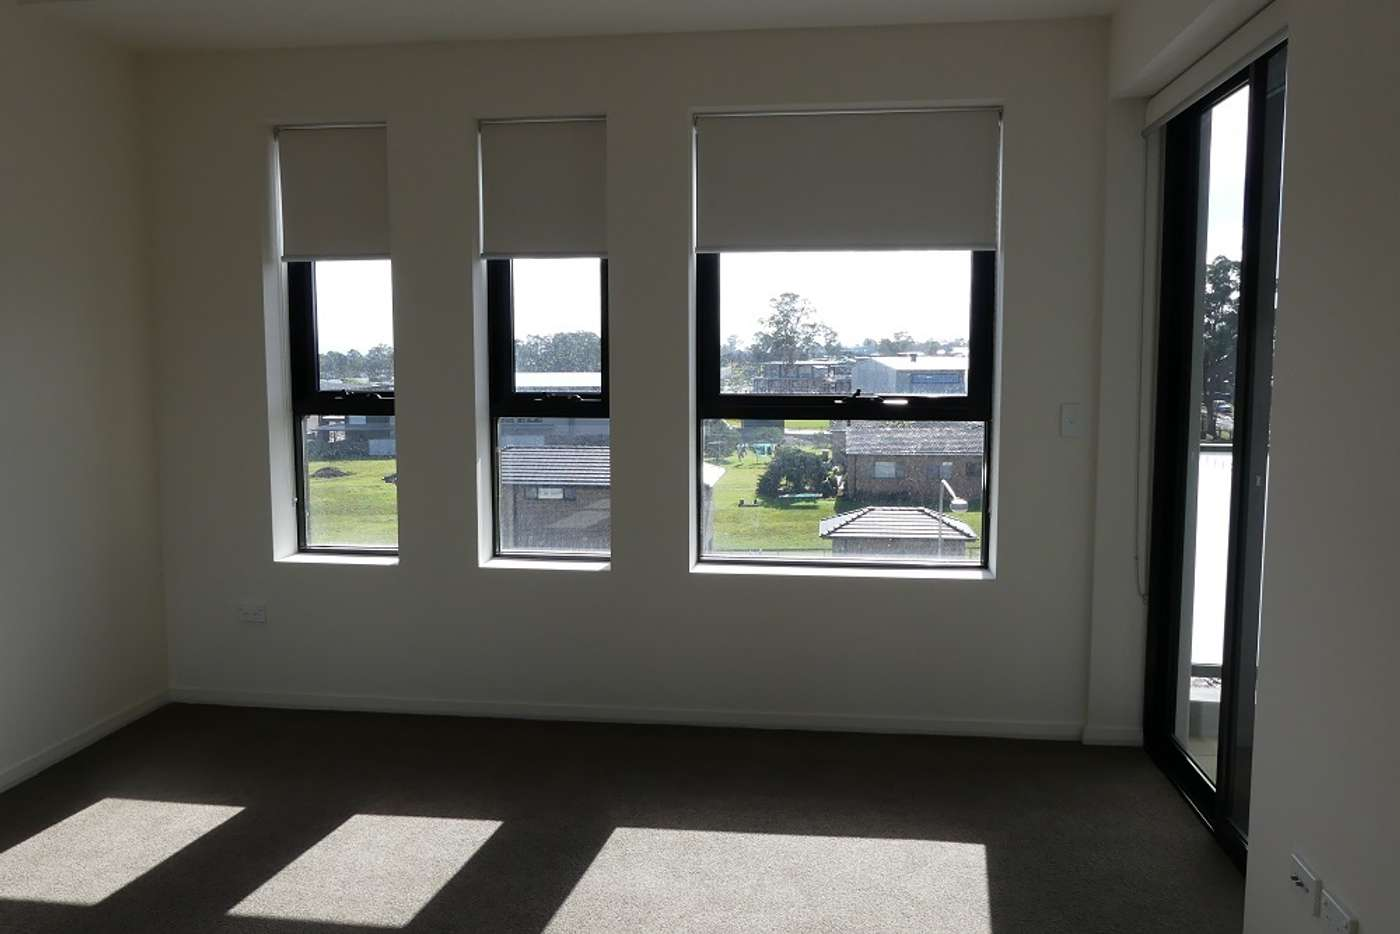 Sixth view of Homely apartment listing, 325/10 Hezlett Road, North Kellyville NSW 2155